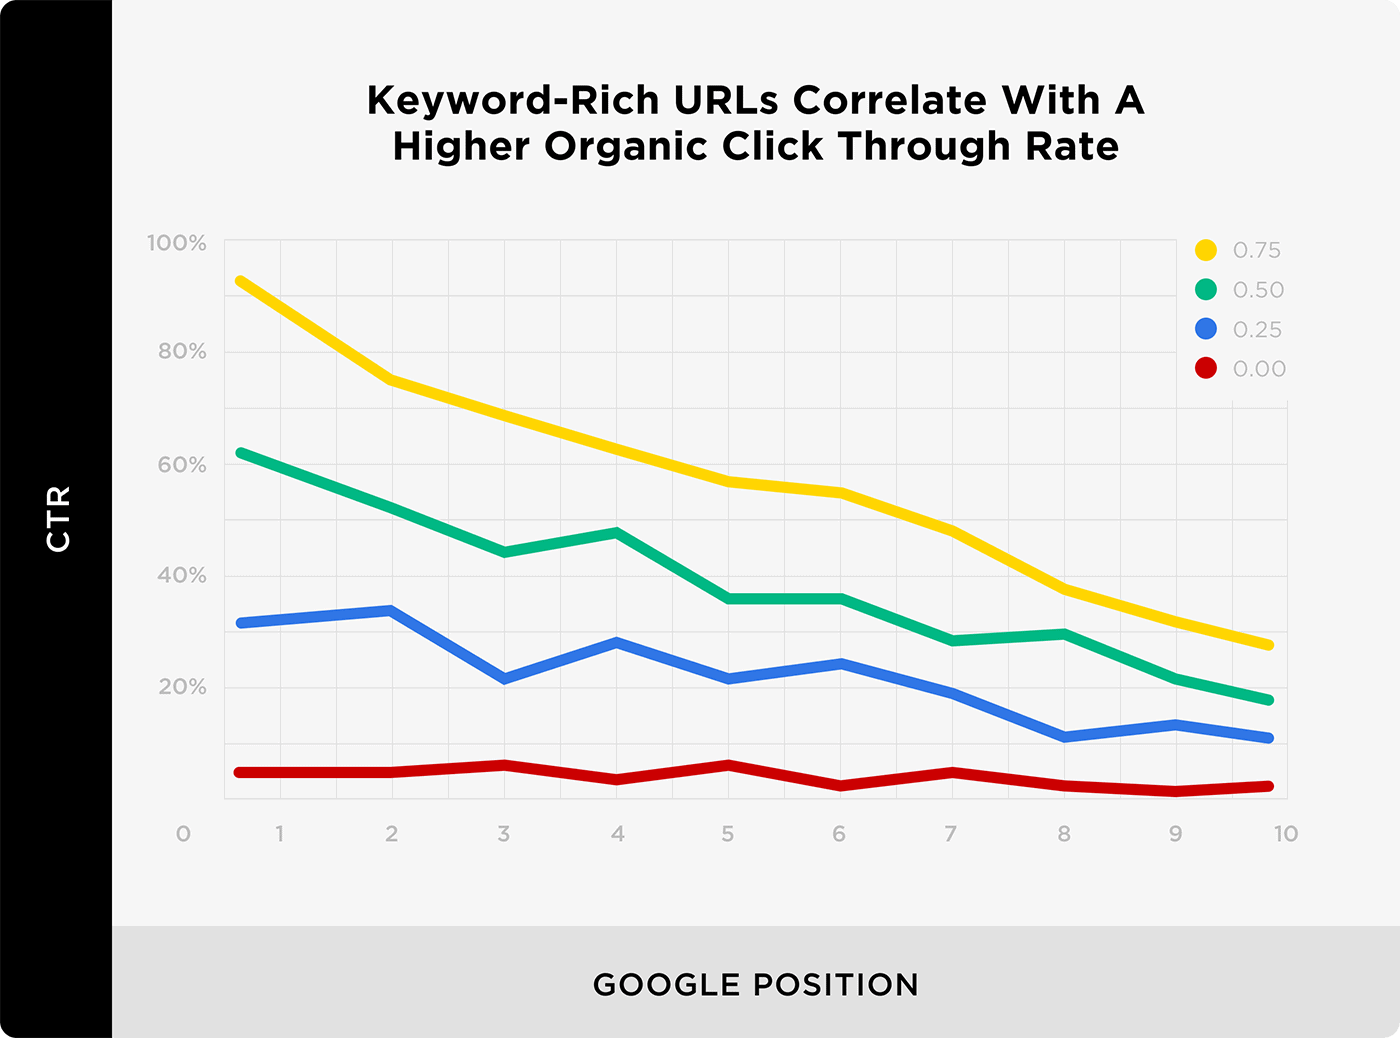 Keyword-Rich URLs Correlate With A Higher Organic Click Through Rate